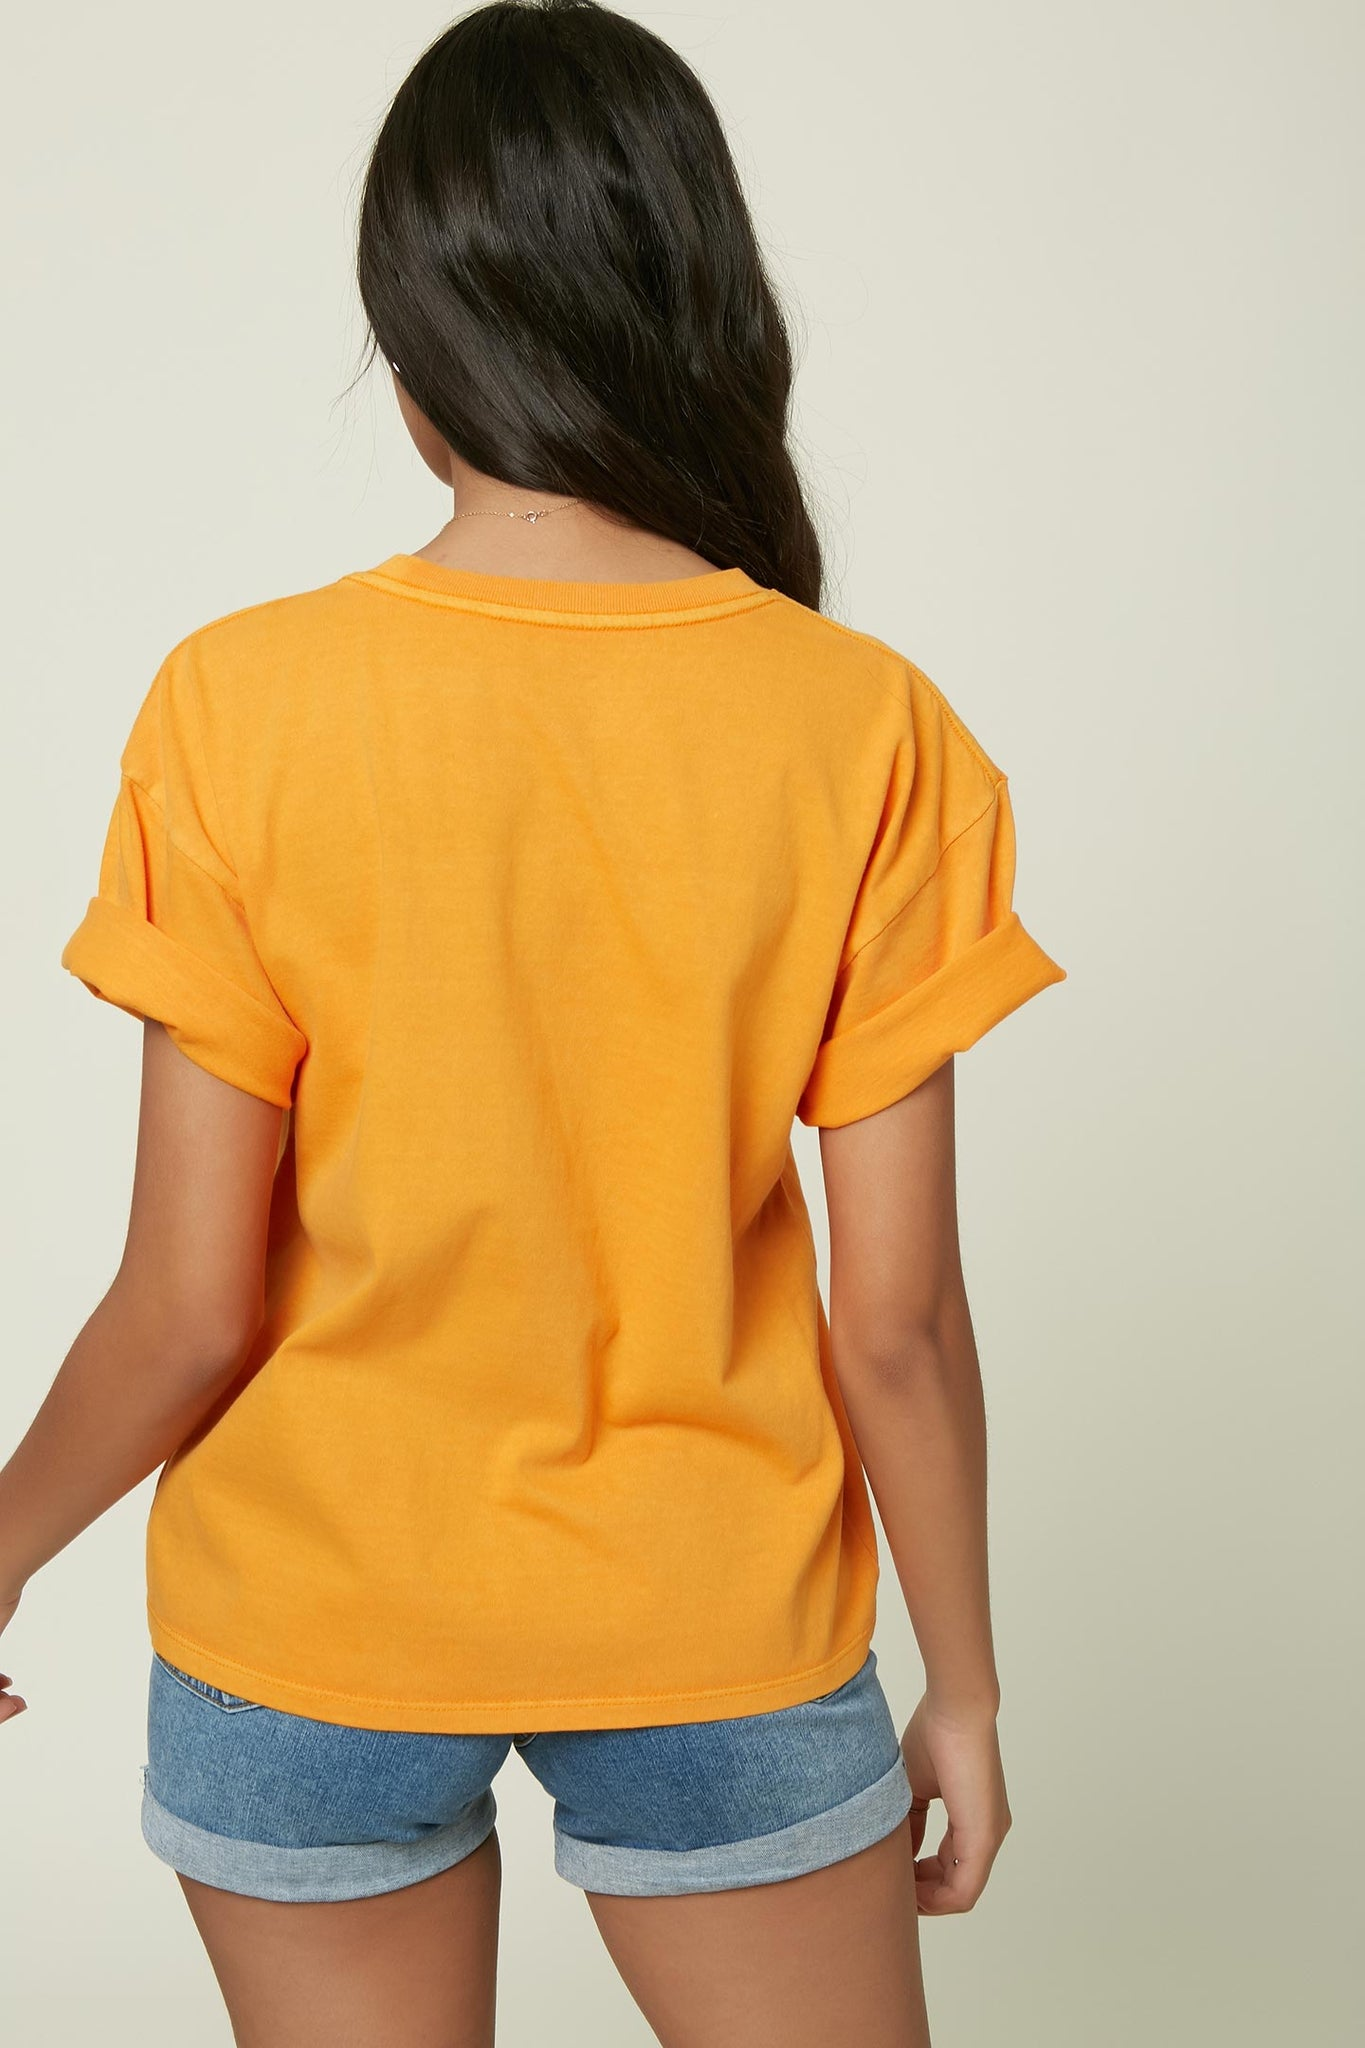 Sunshine Factory Tee - Washed Maramalade | O'Neill